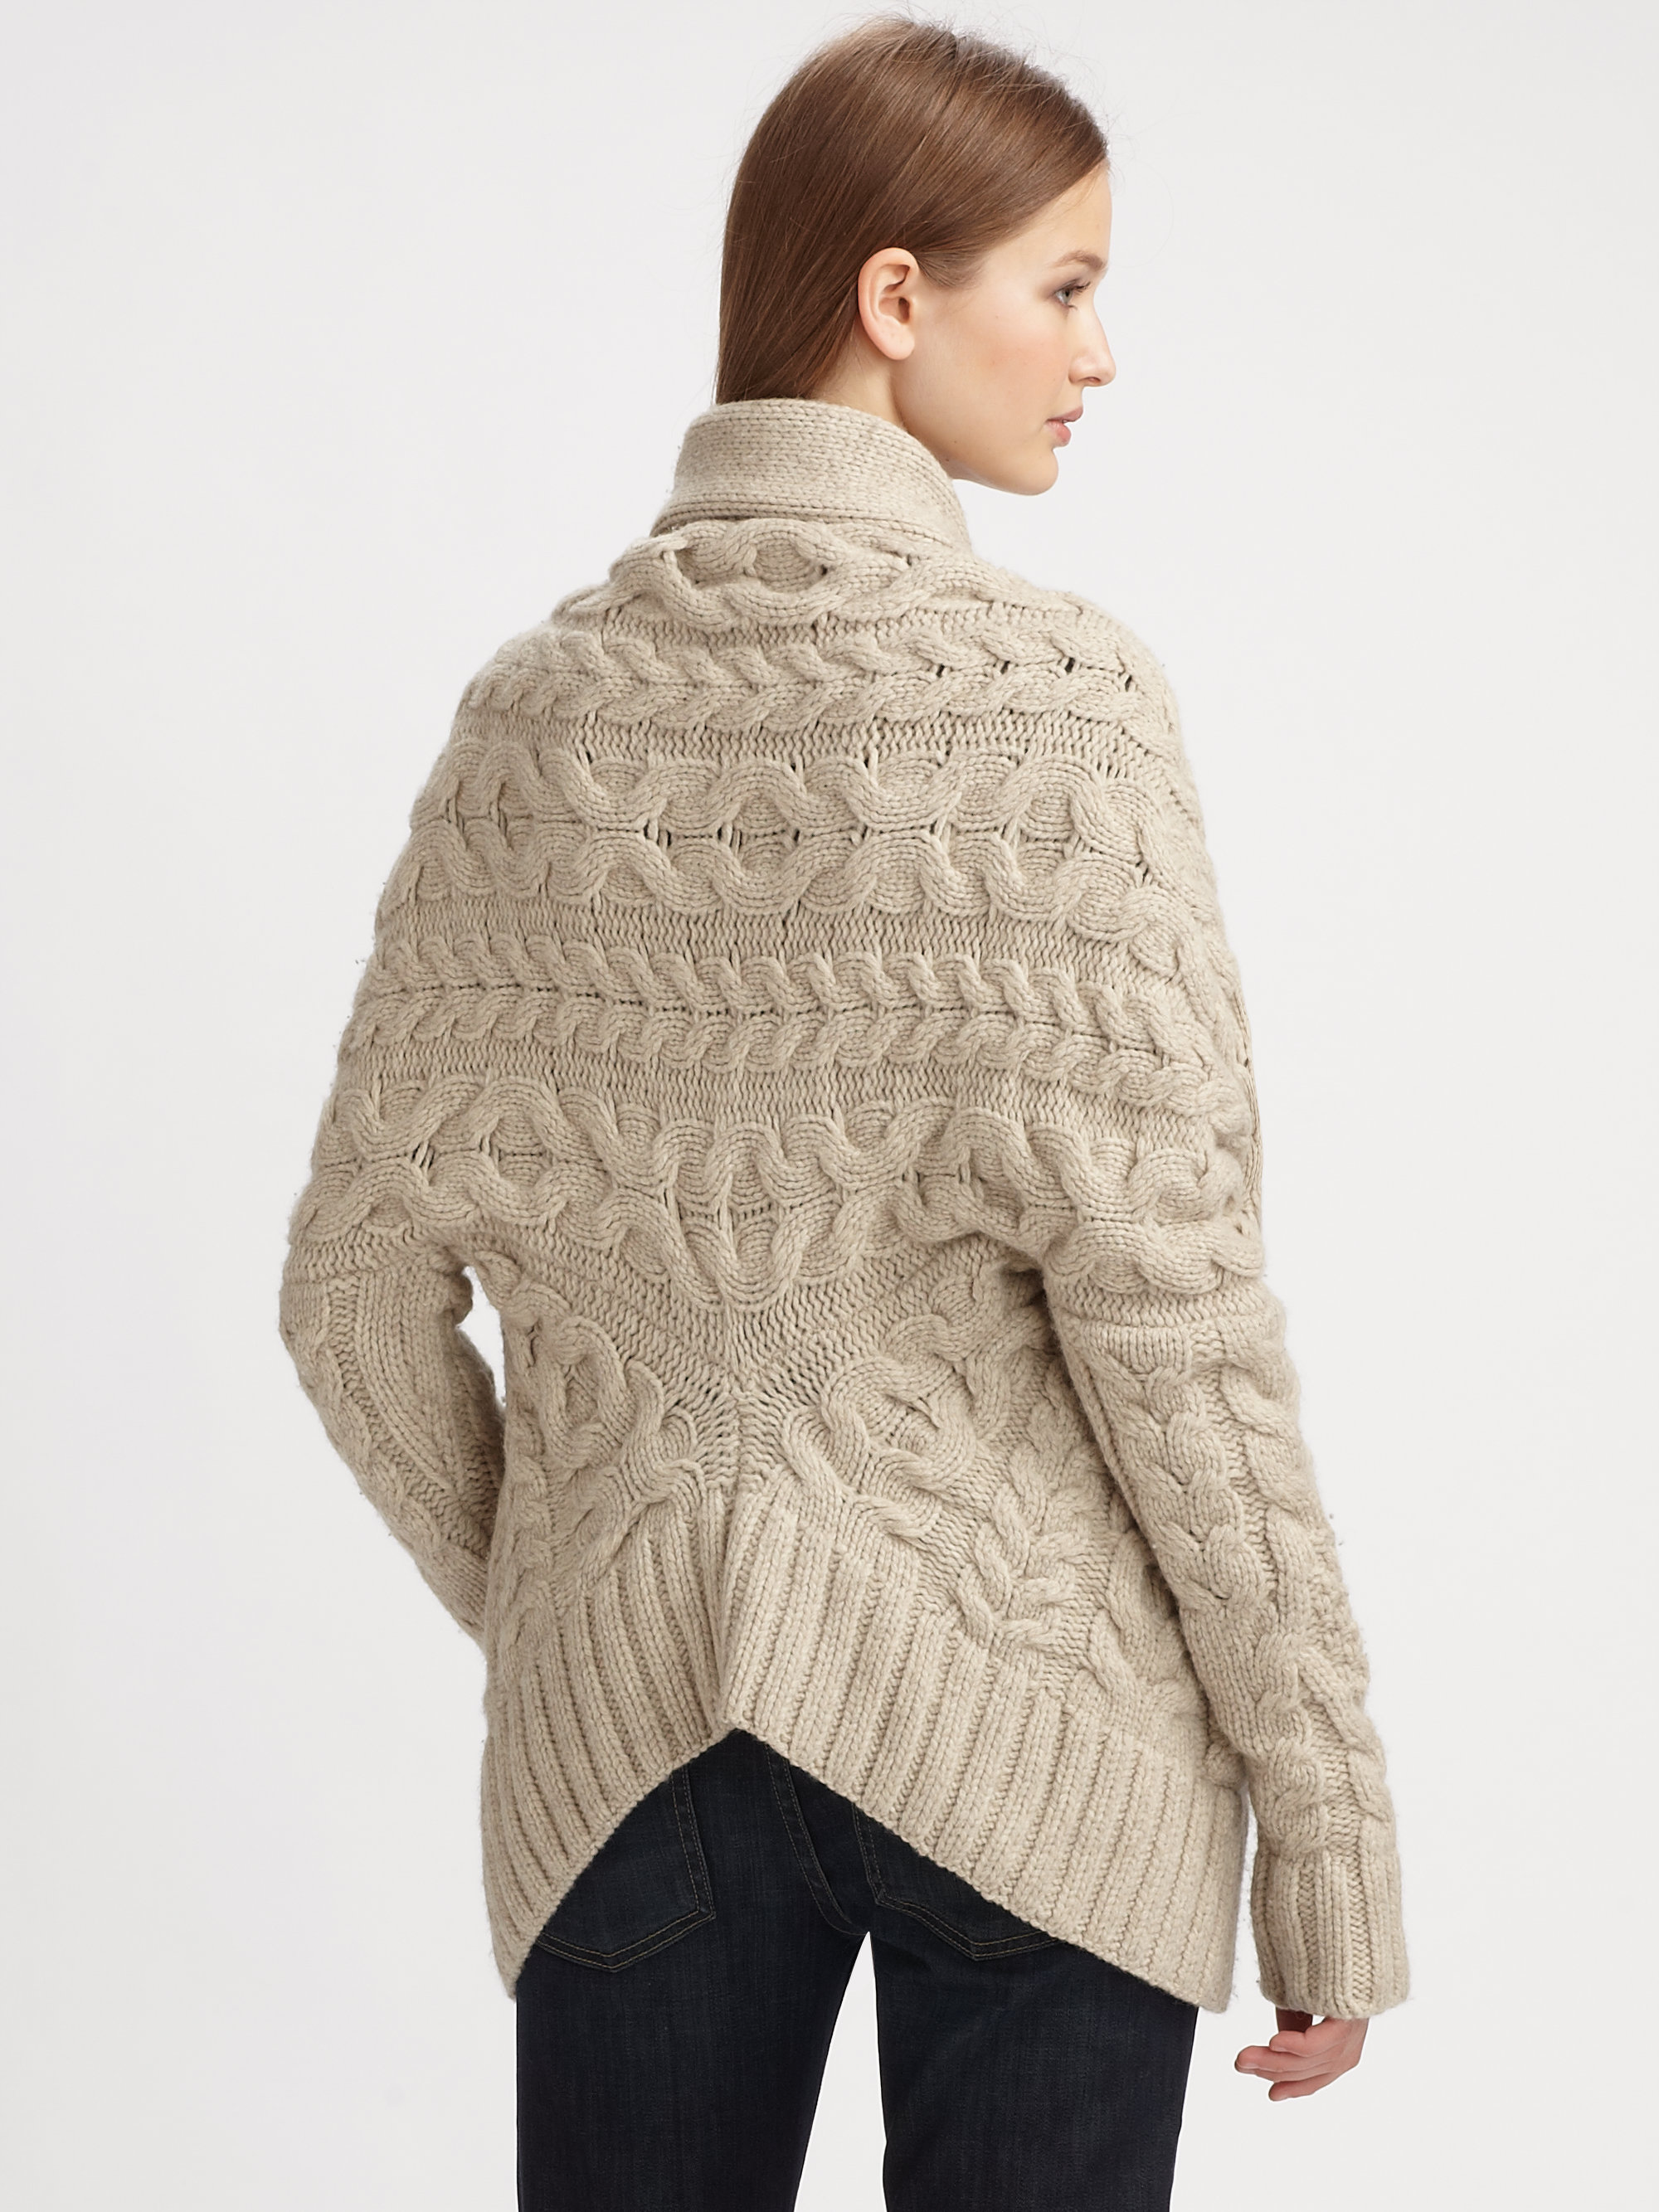 Cable Knit Sweater Coat Image collections - Craft Design Ideas